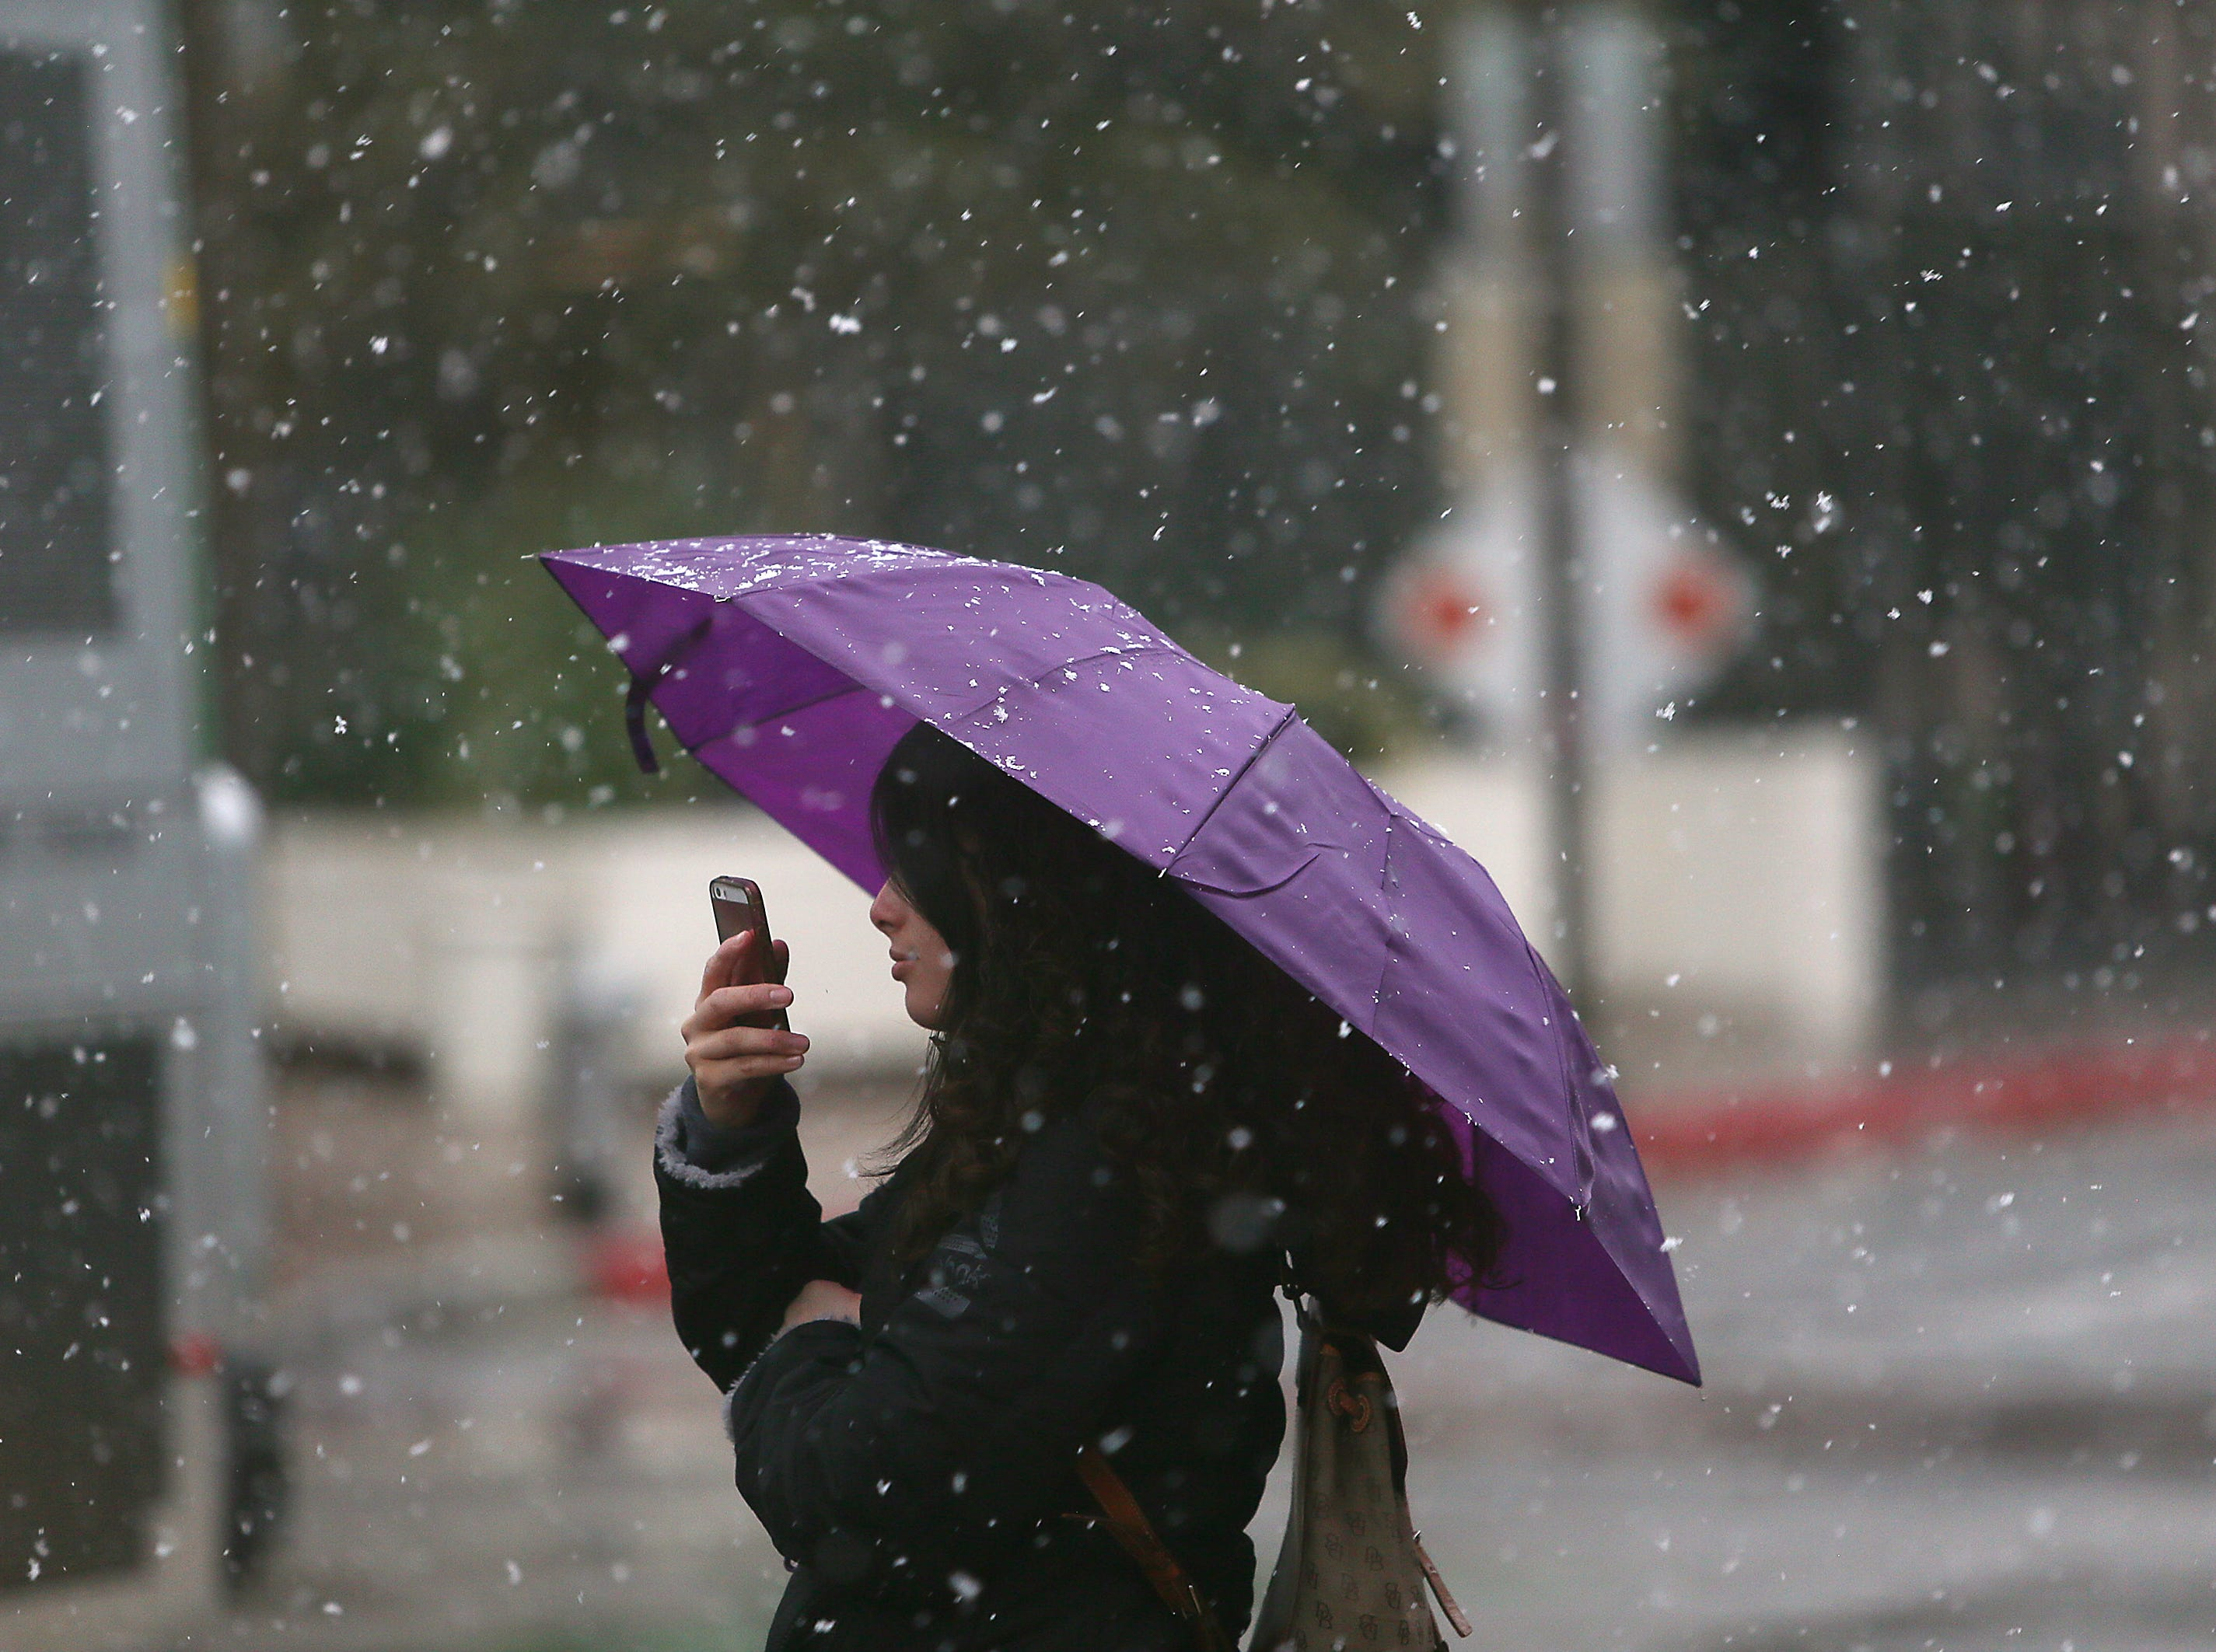 A woman takes a photo with her cellphone as snow falls on Feb. 22, 2019, in Tucson.